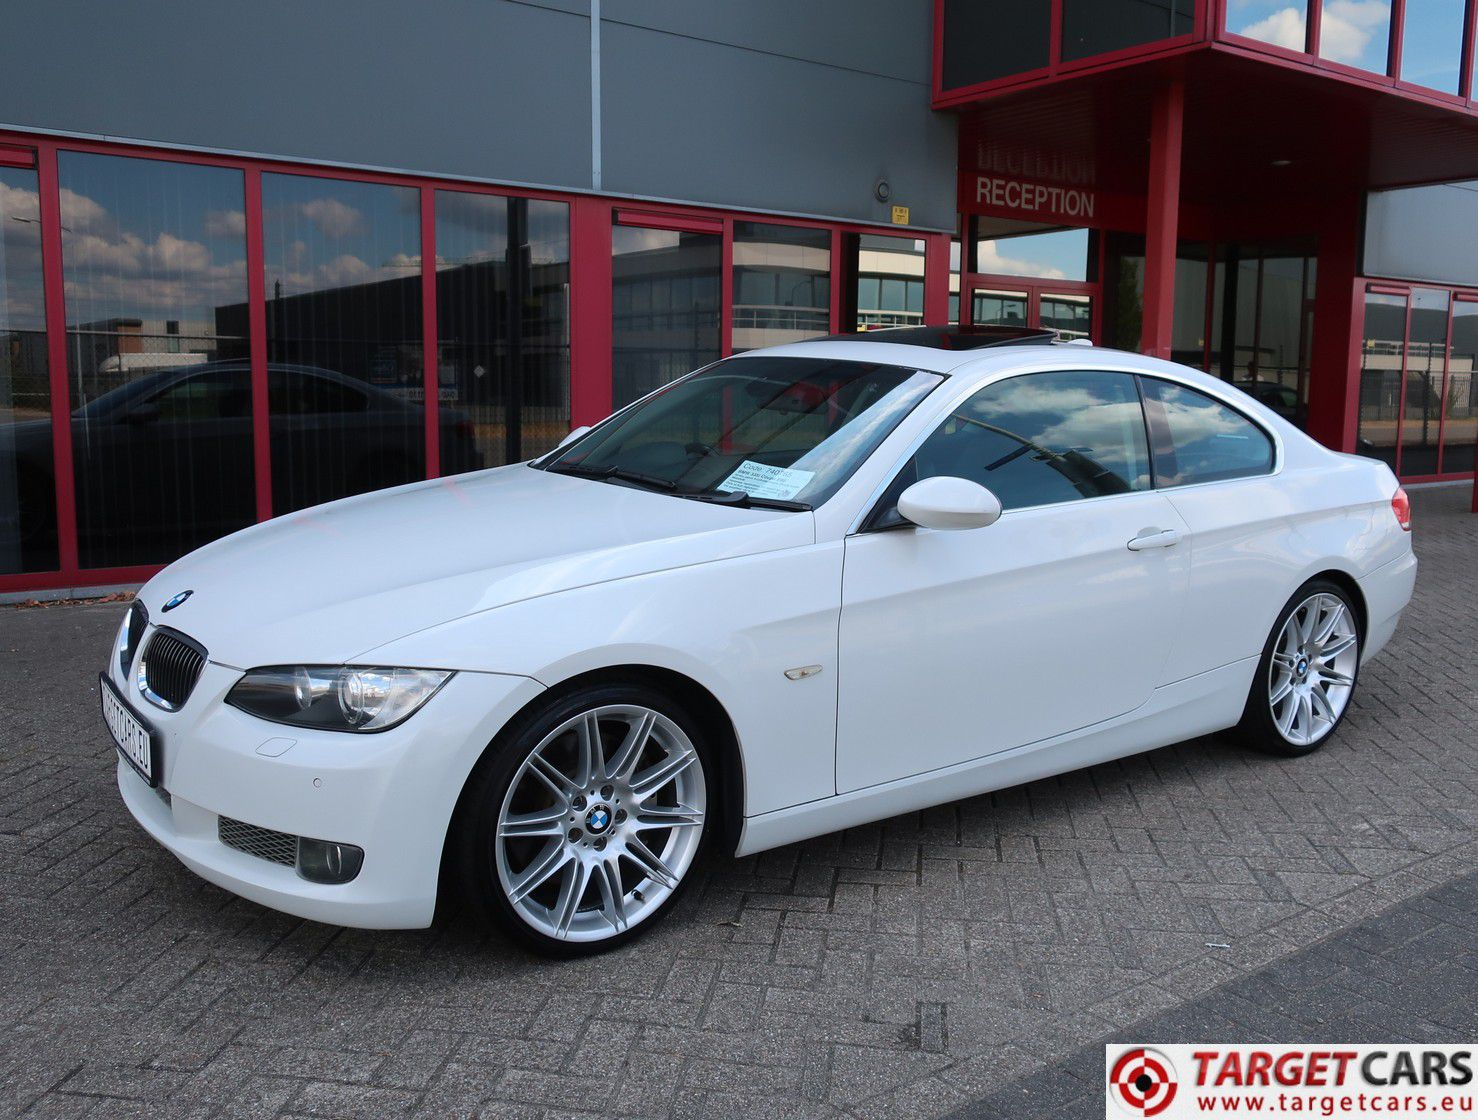 bmw 335i e92 coupe 3 0l 306hp 10 06 white 88449km rhd. Black Bedroom Furniture Sets. Home Design Ideas